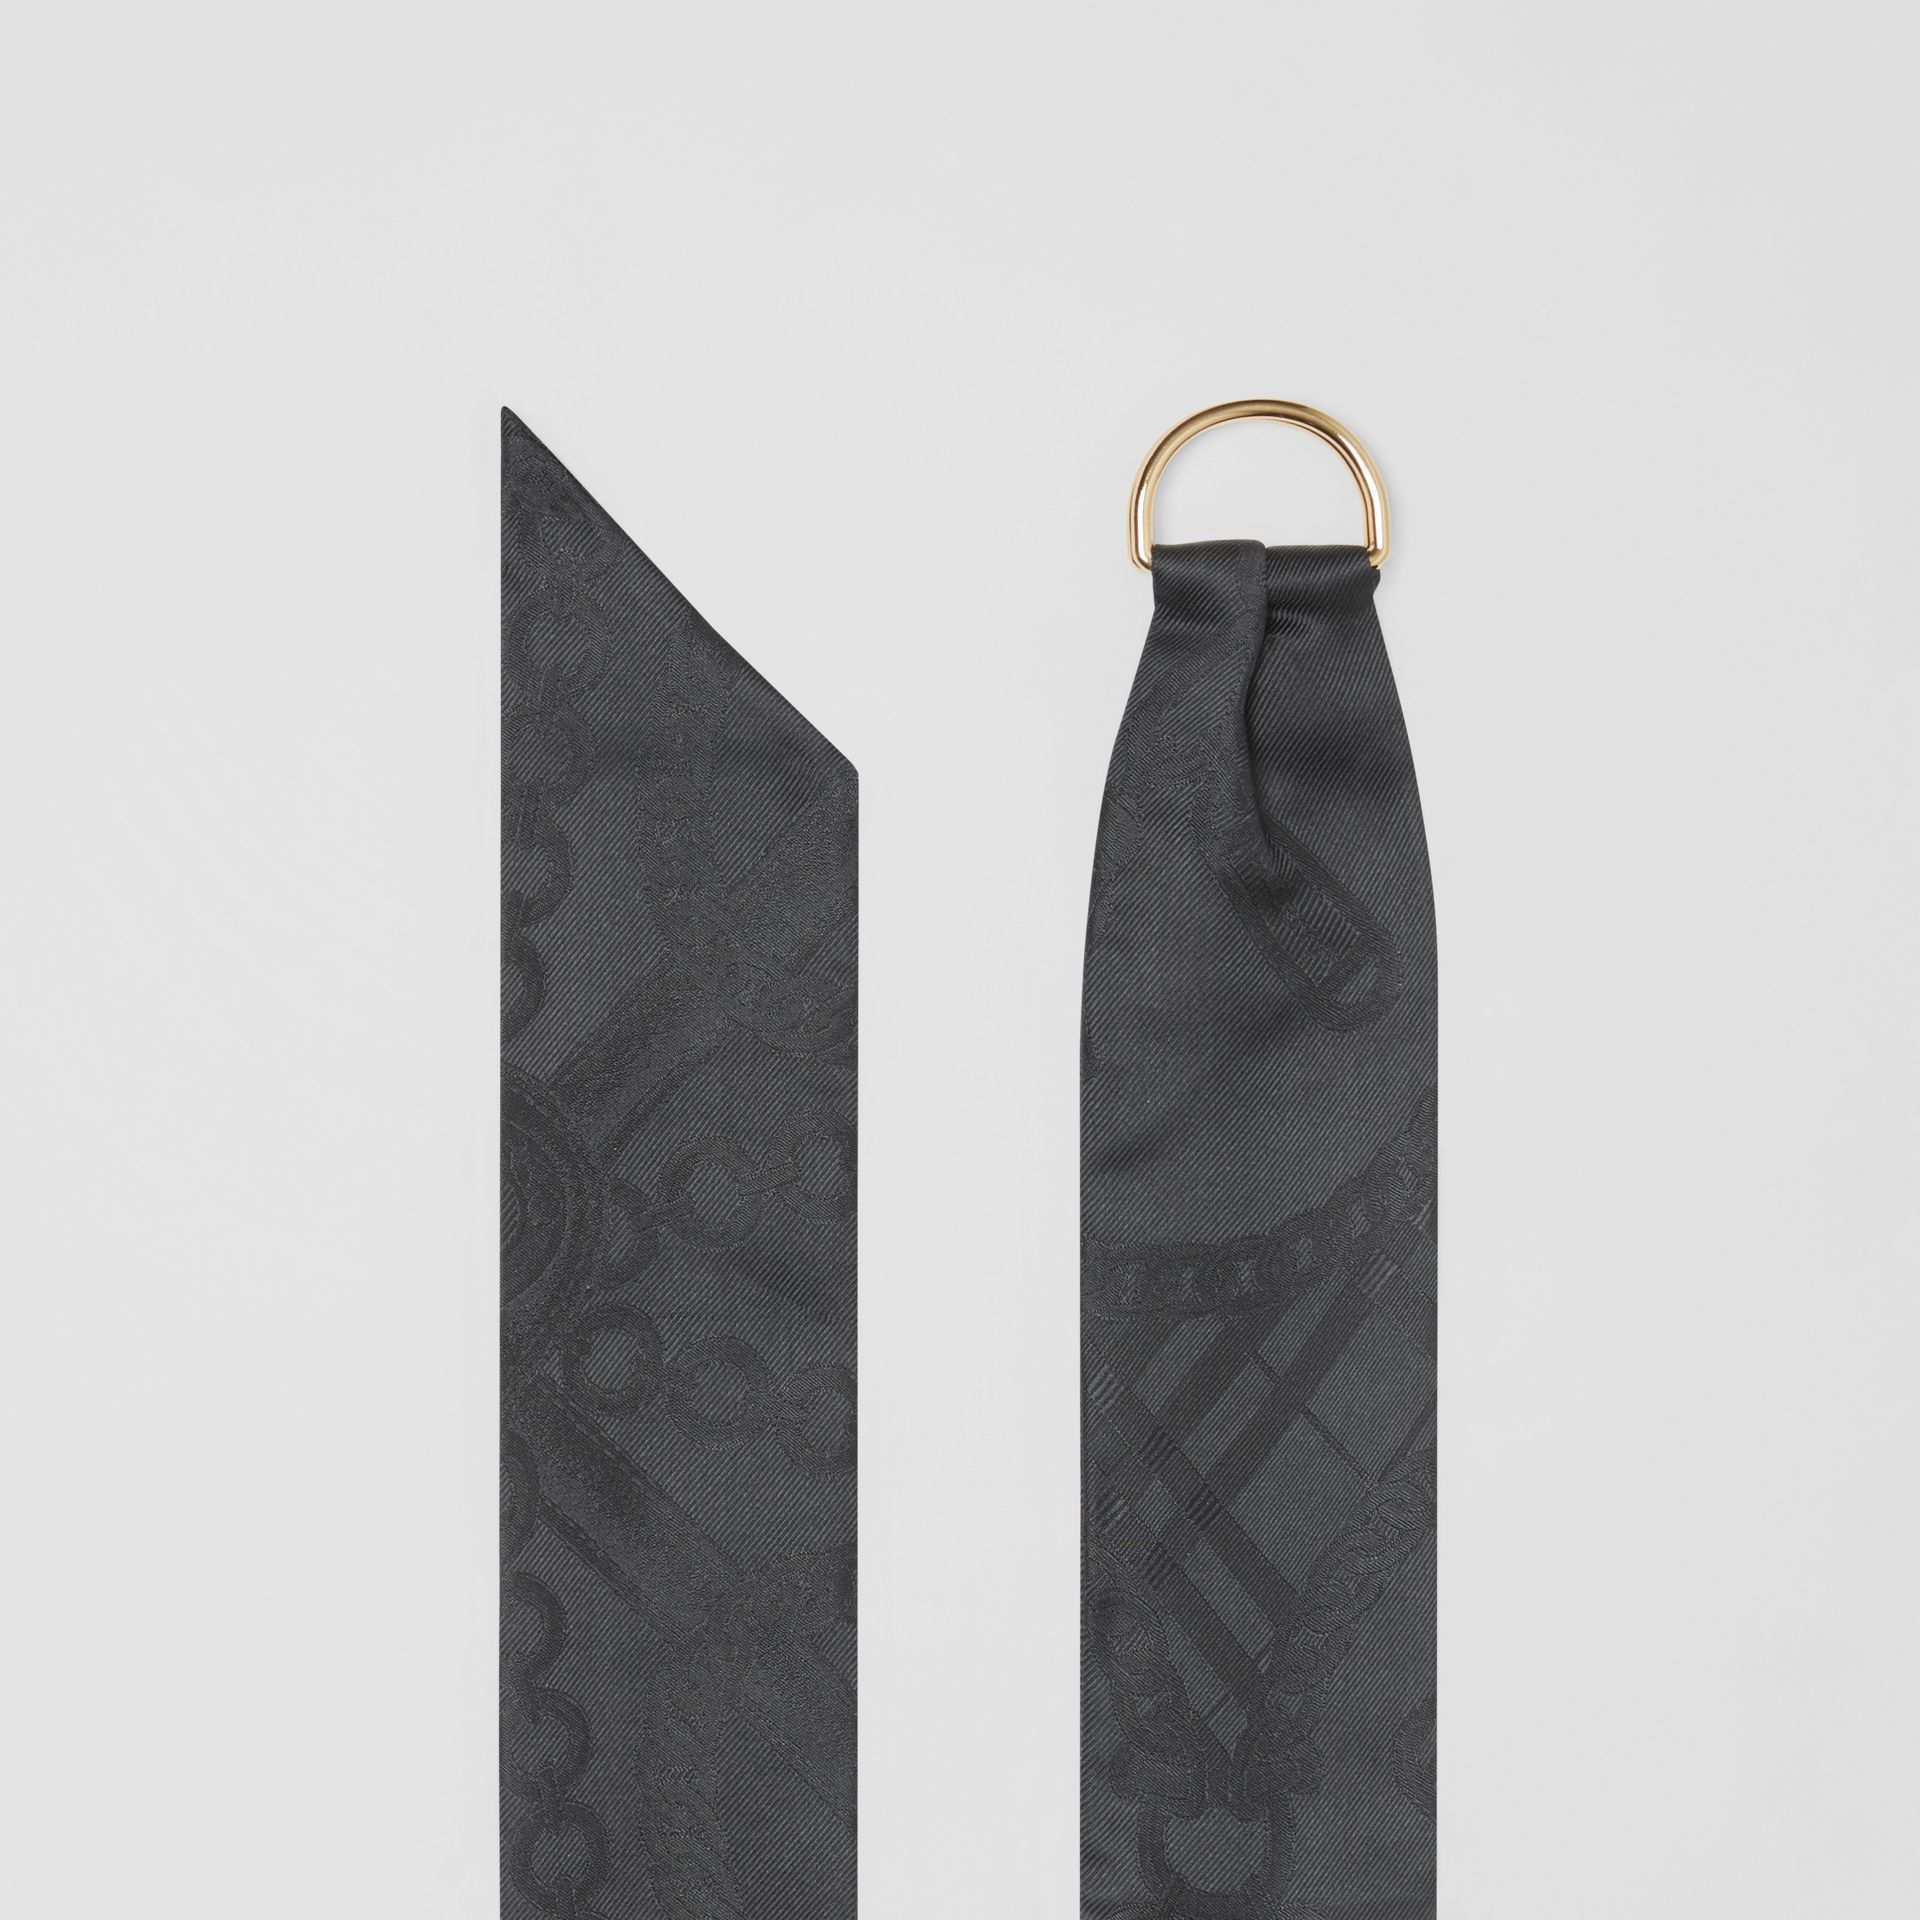 D-ring Detail Chain Silk Jacquard Skinny Scarf in Black | Burberry United Kingdom - gallery image 4